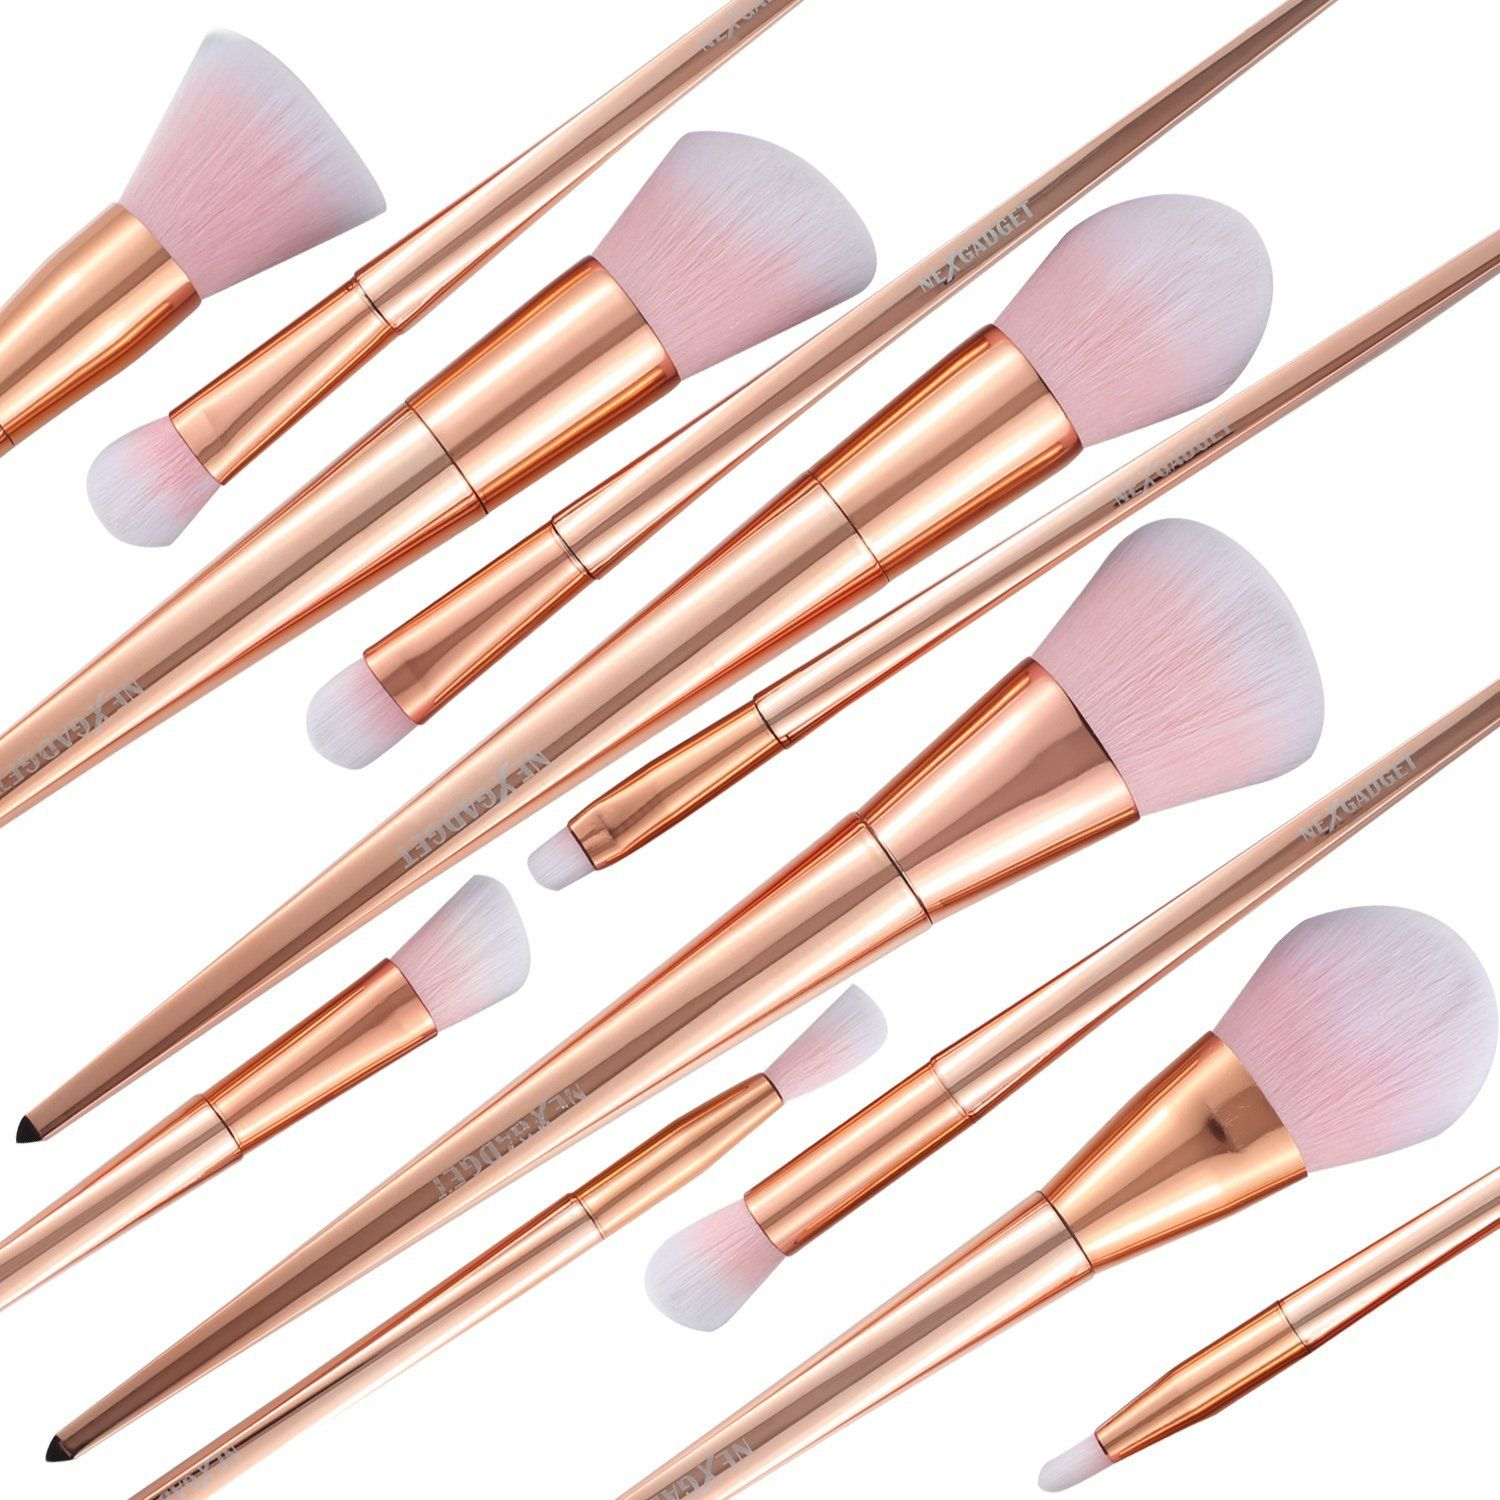 Makeup Brushes Premium Makeup Brush Kit Synthetic Kabuki